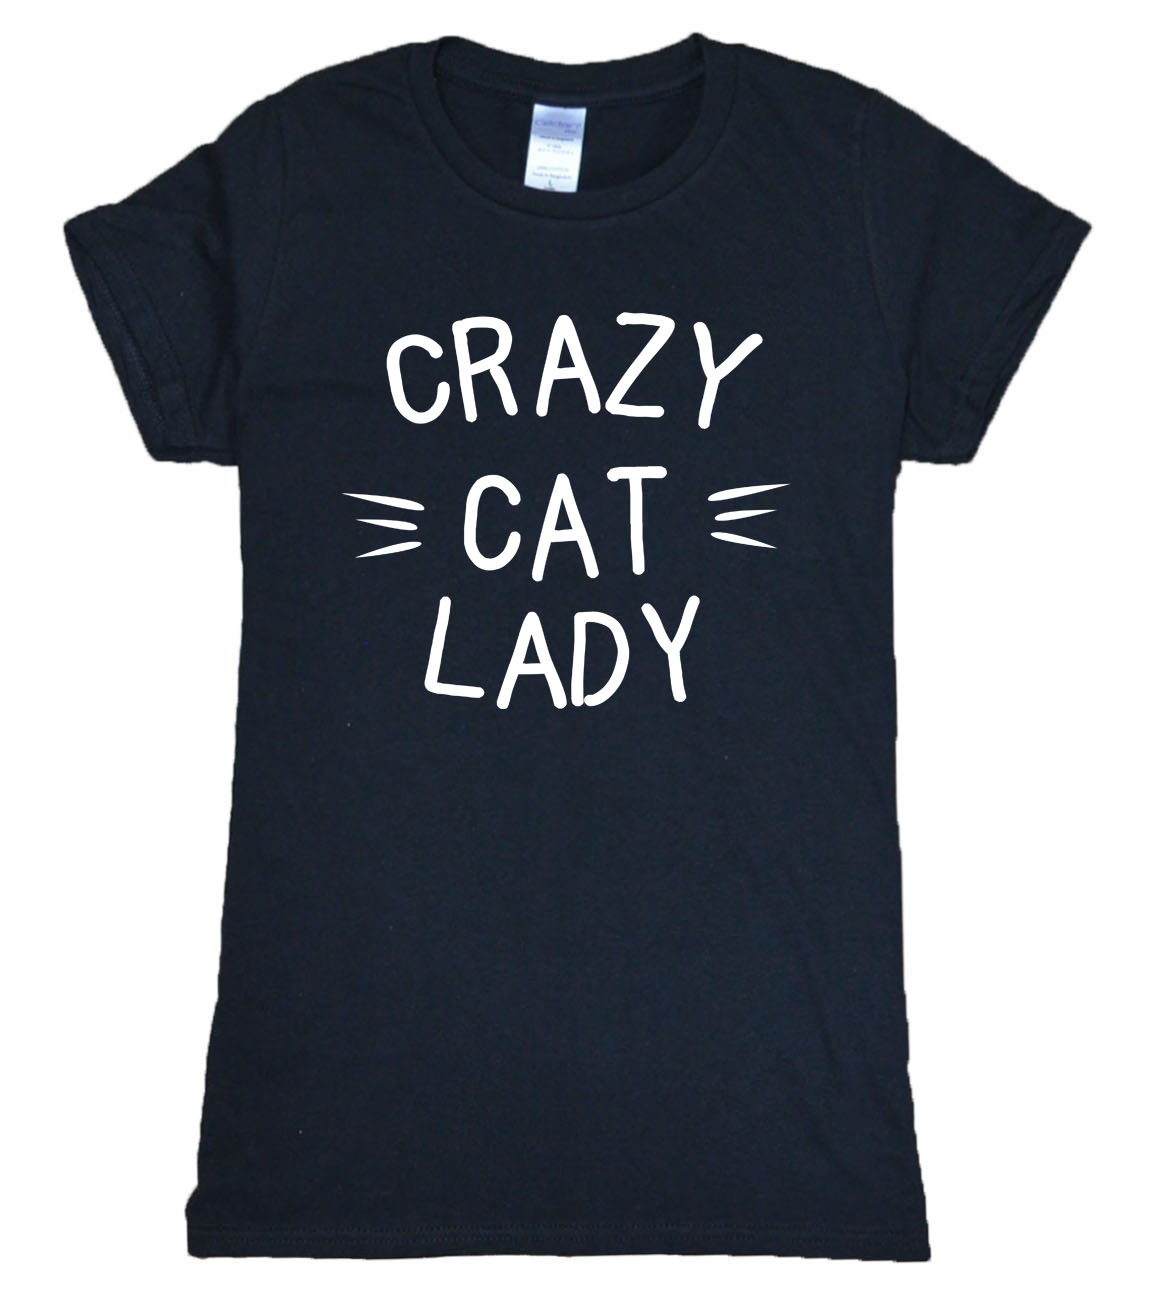 2019 summer new arrival CRAZY CAT LADY brand kawaii women t shirt hipster harajuku tops tees cotton high quality t-shirt women